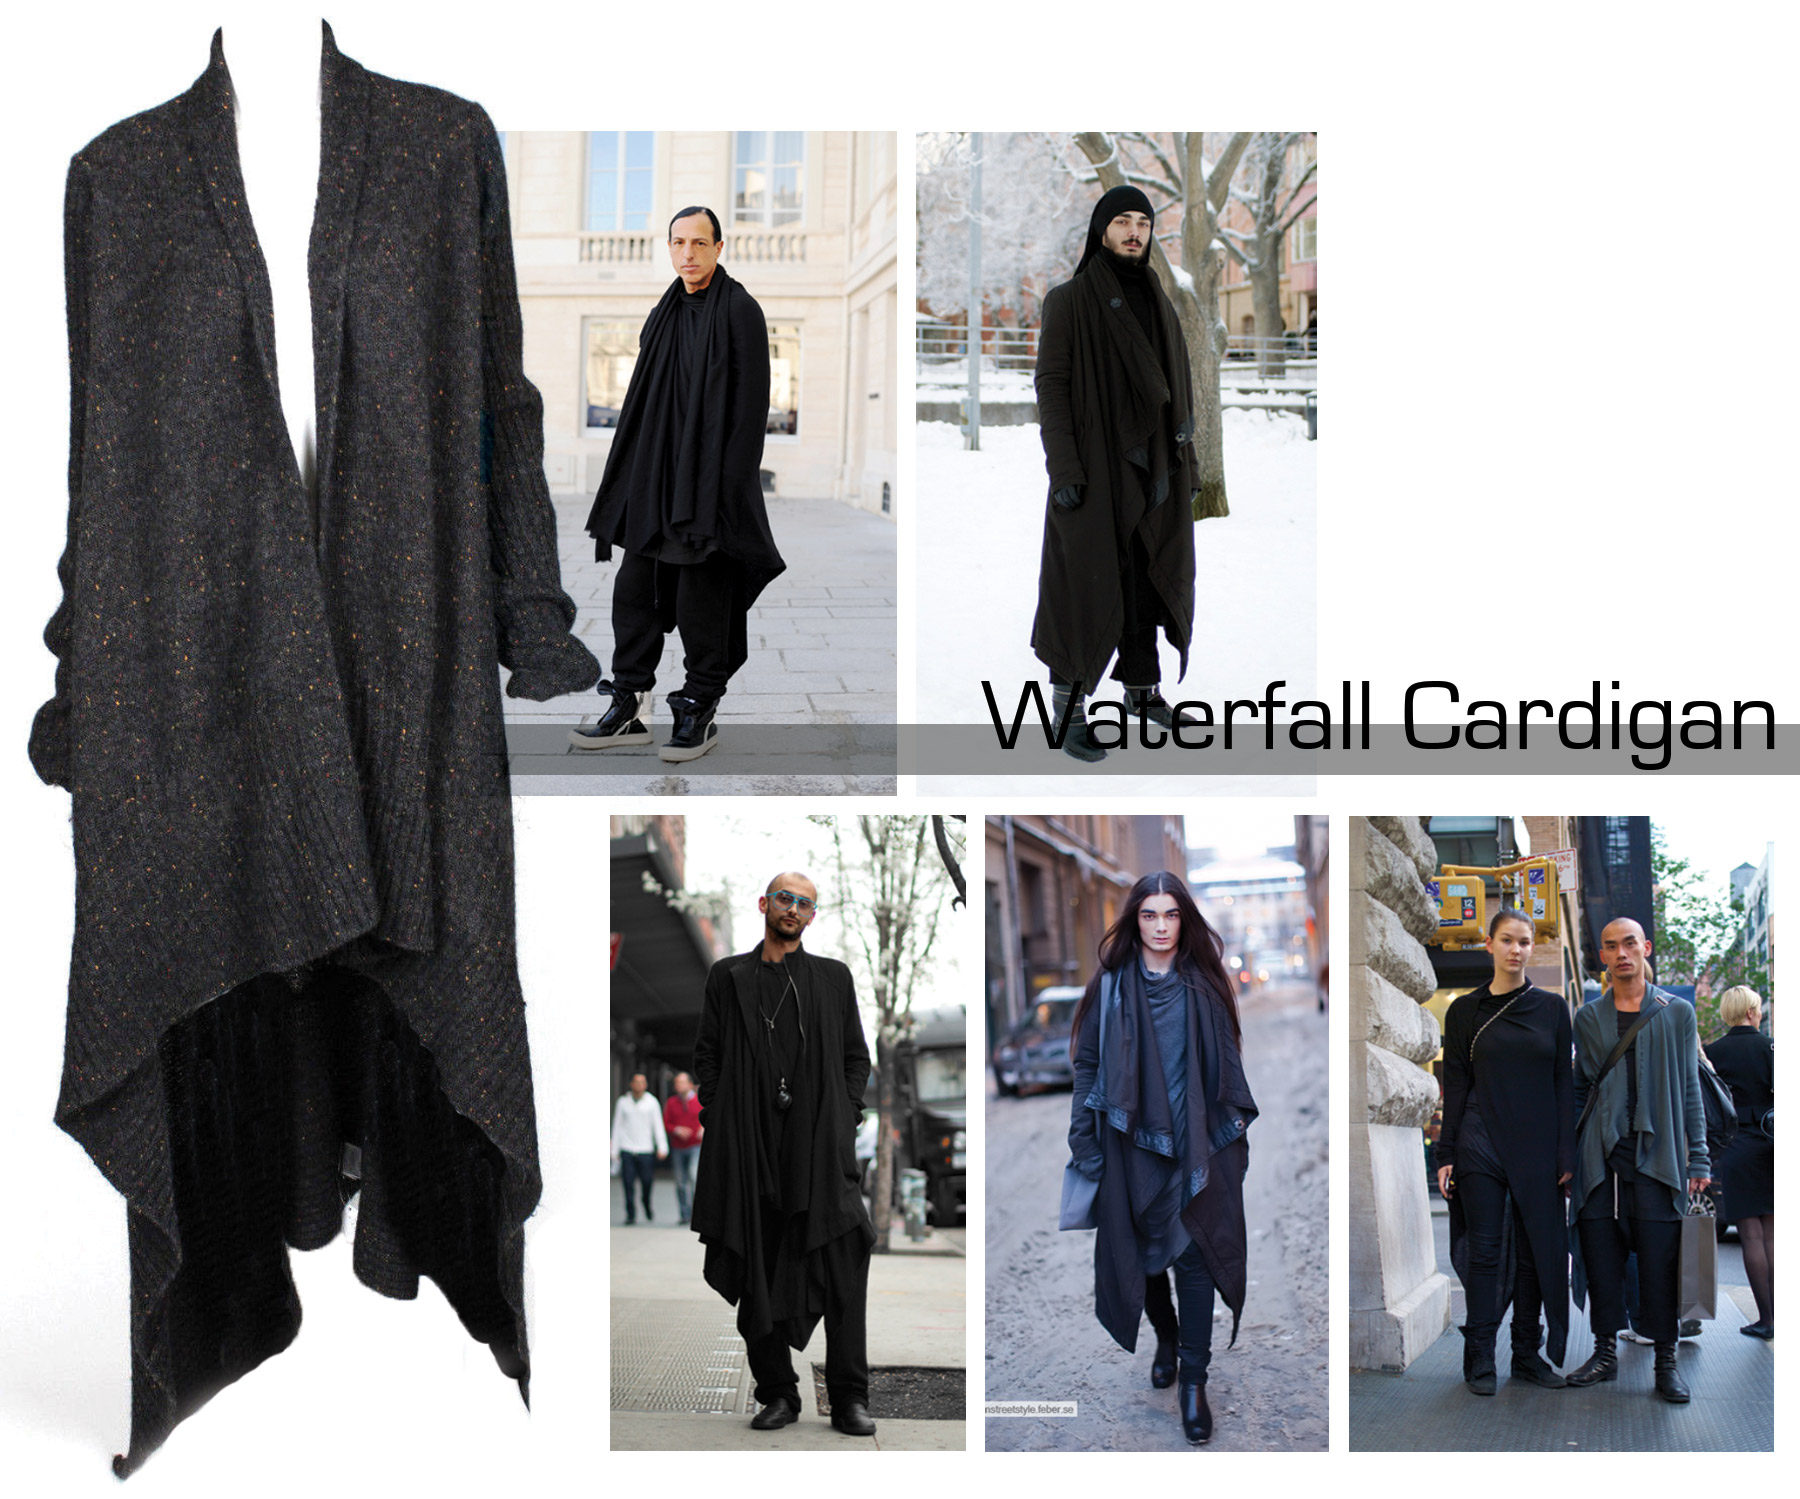 Rick Owens Waterfall Cardigan